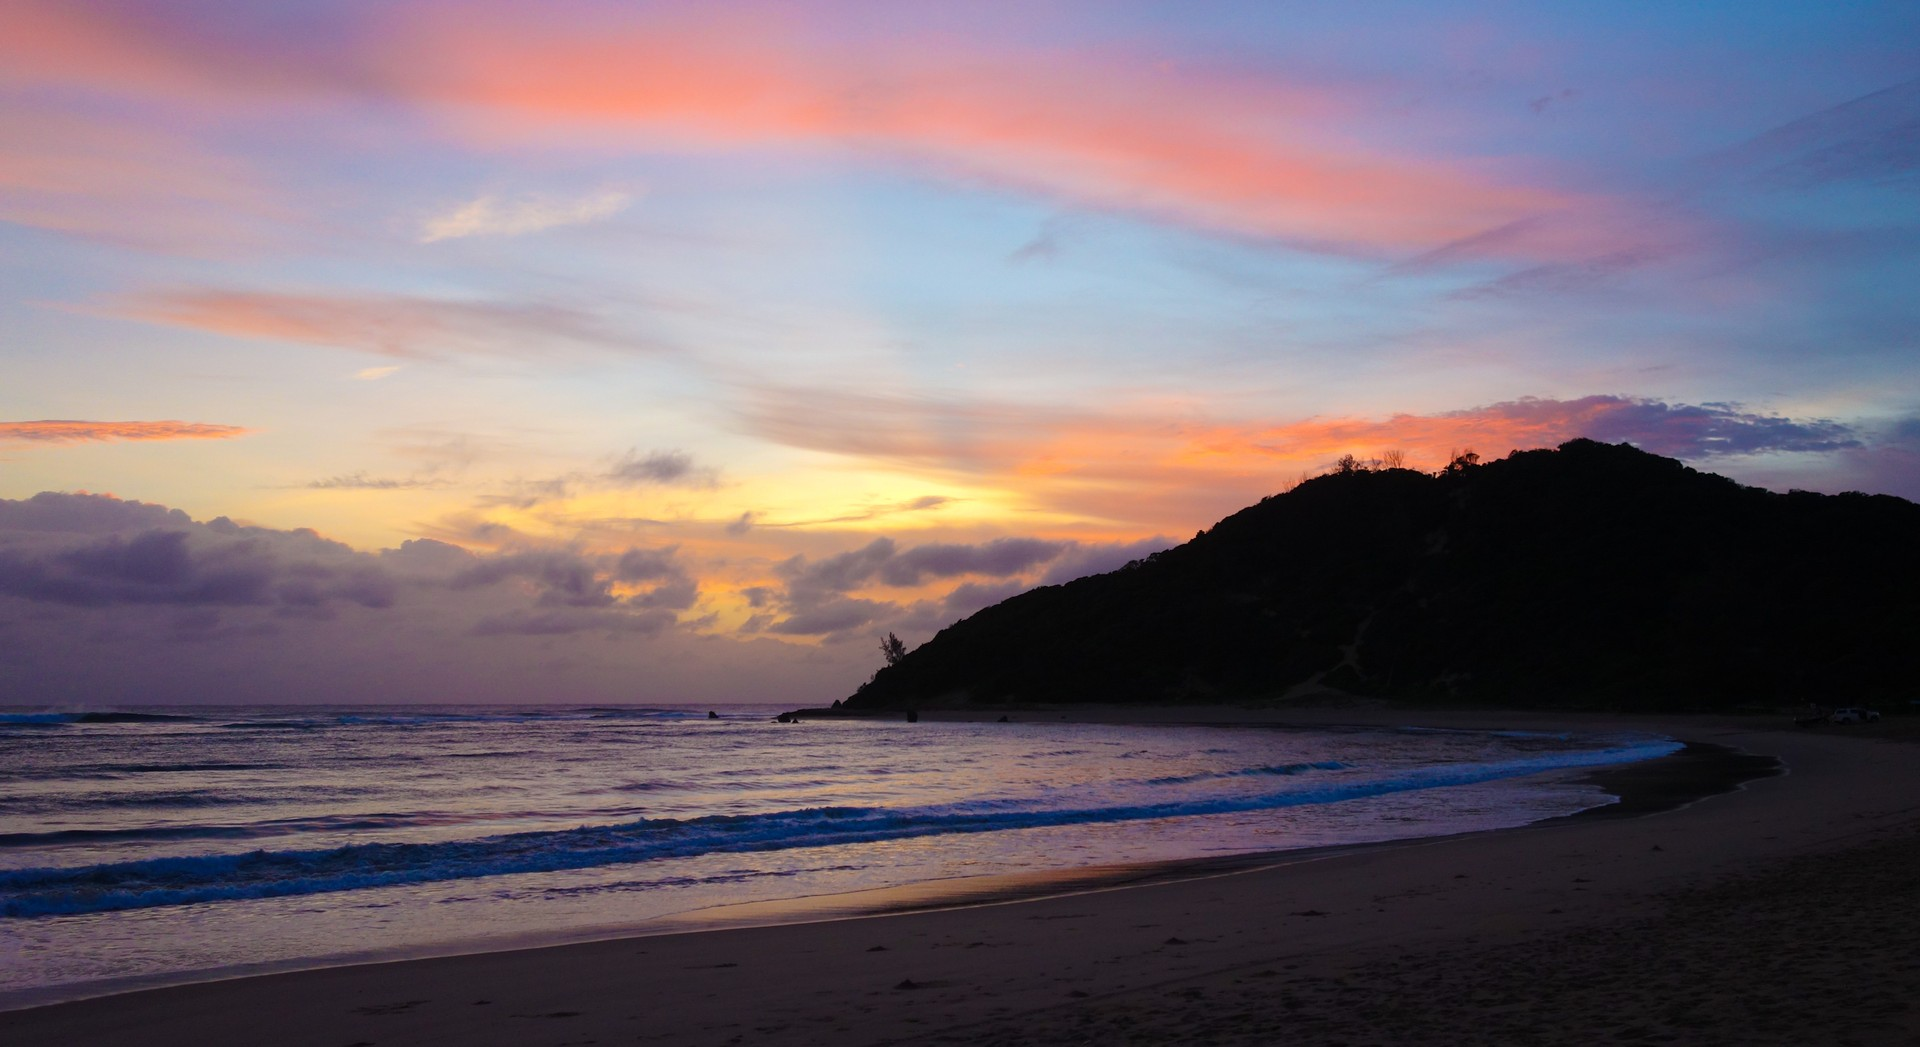 Sunset over Ponta do Ouro beach in Mozambique